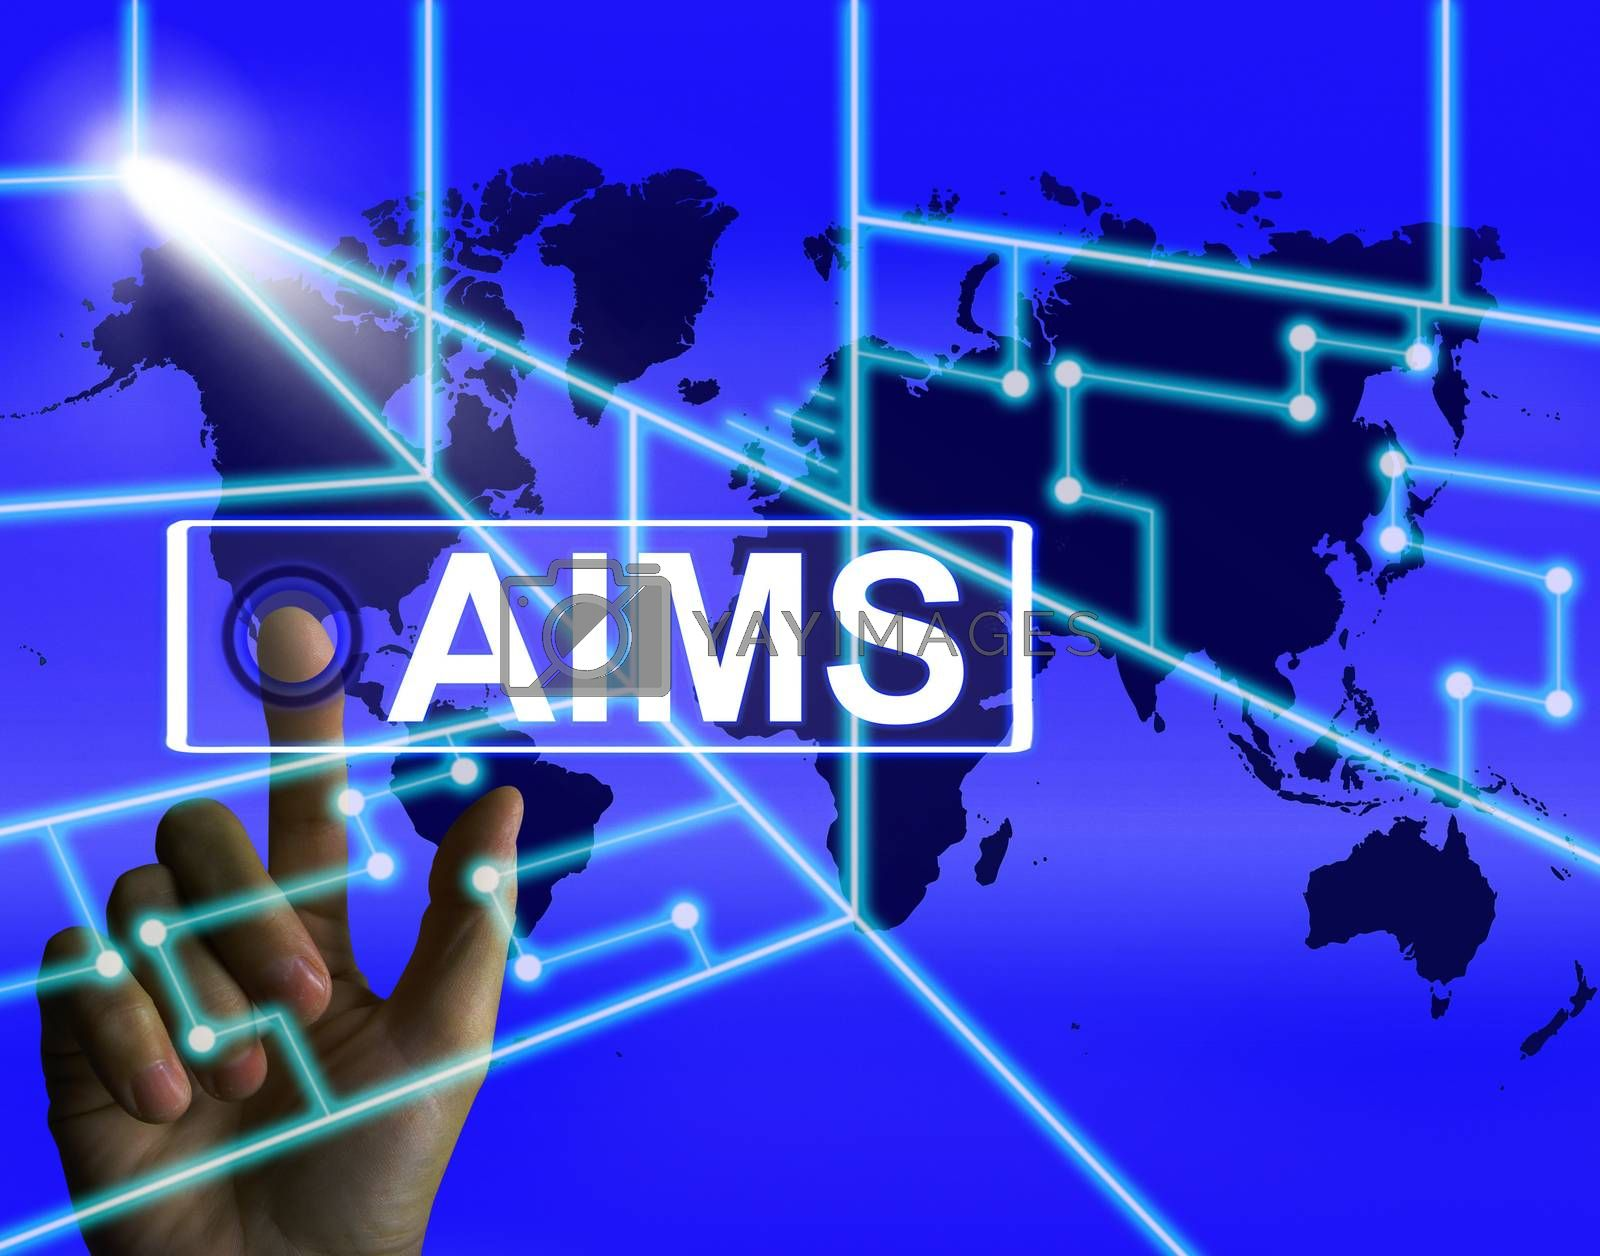 Aims Screen Shows International Goals and Worldwide Aspirations by stuartmiles